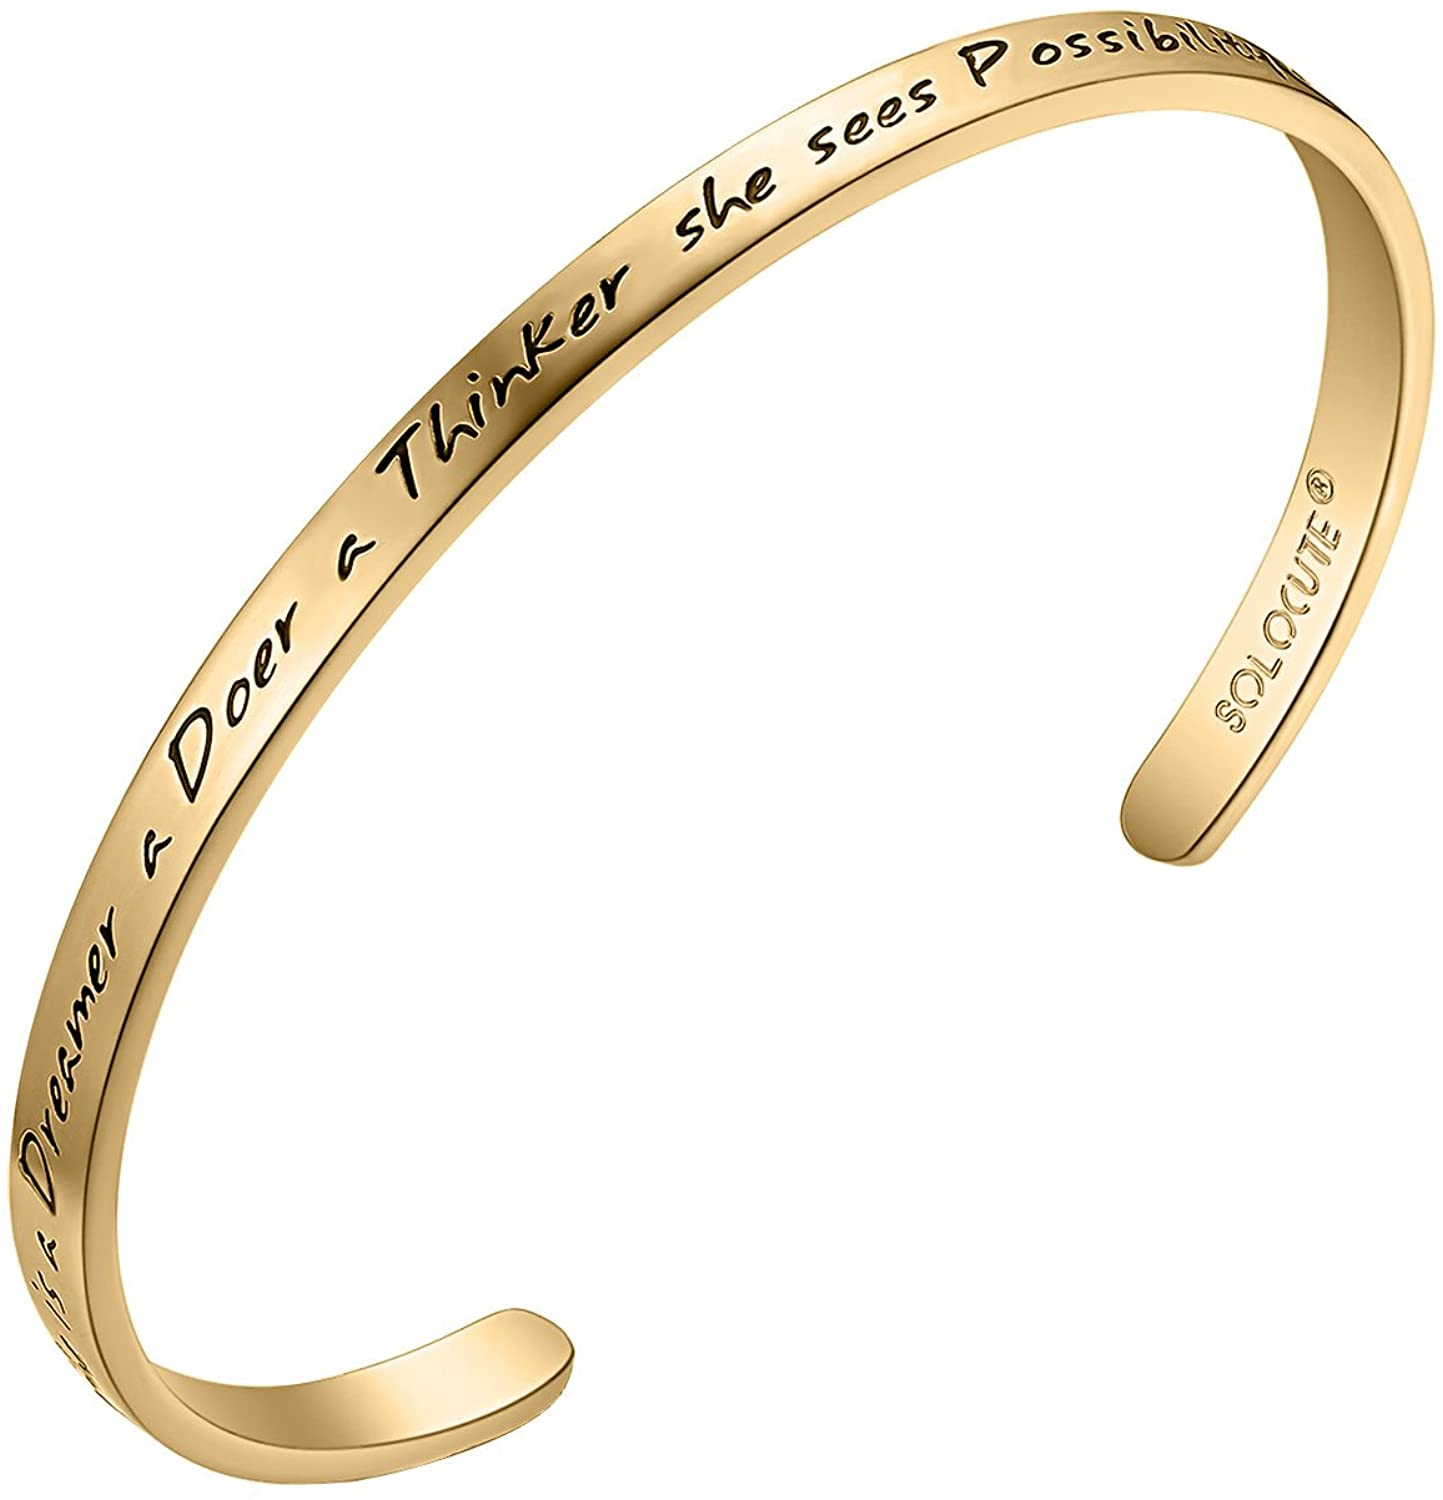 Solocute Mothers Day Inspirational Bangle Bracelet Engraved She is a Dreamer a Doer a Thinker she sees Possibility Everywhere Motto Jewelry Cuff, for Birthday, Anniversary Day